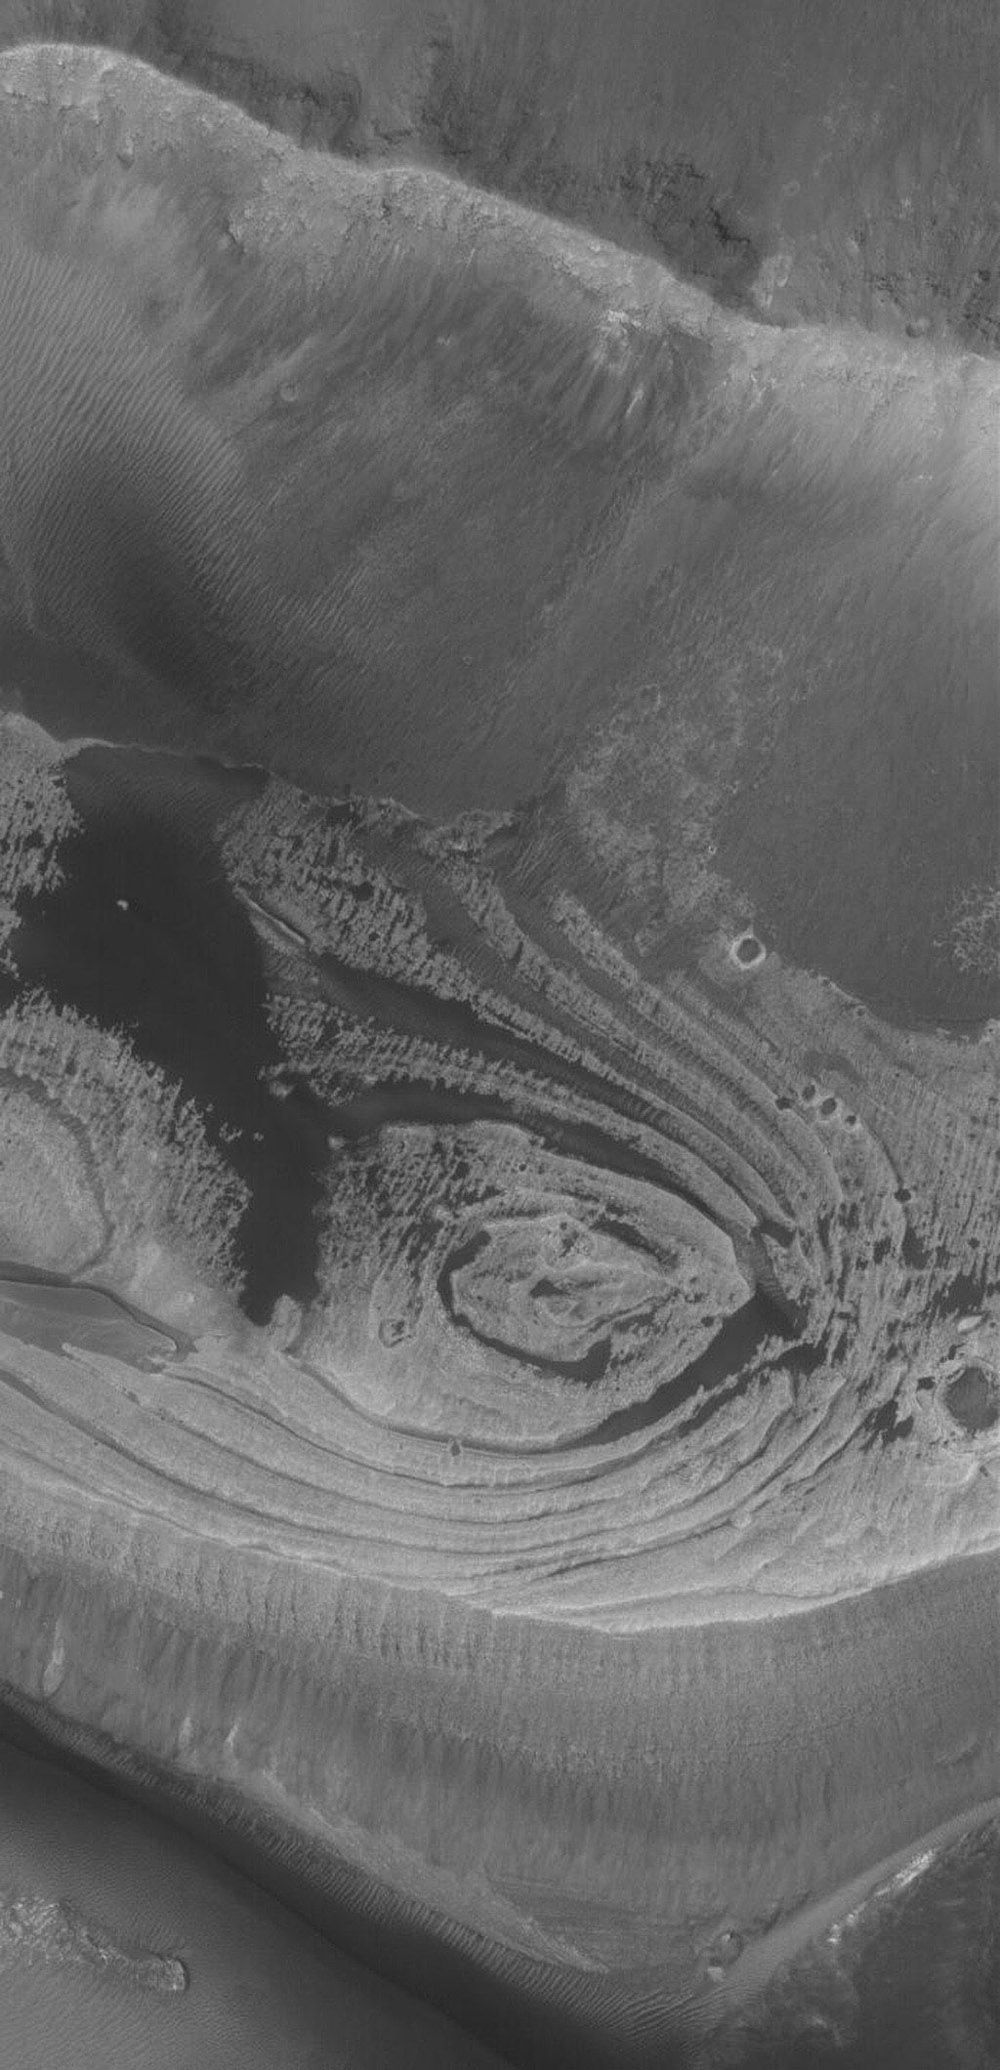 NASA's Mars Global Surveyor shows light-toned, layered rock outcrops found in eastern Candor Chasma, part of the vast Valles Marineris trough system on Mars.